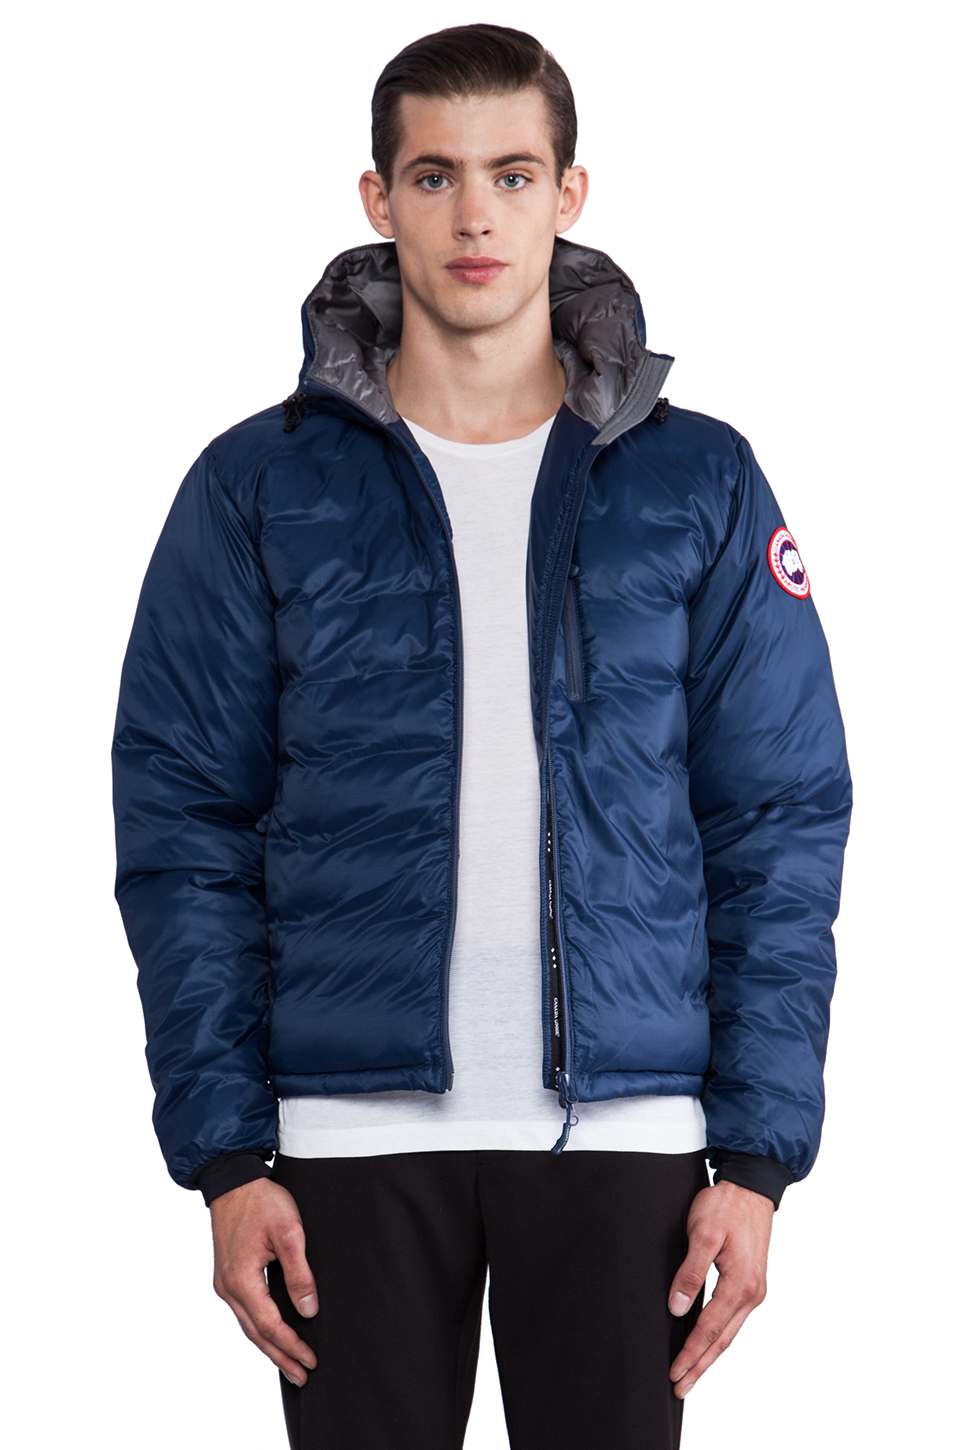 Lyst - Canada Goose Lodge Hoody in Blue for Men 5c23f3334